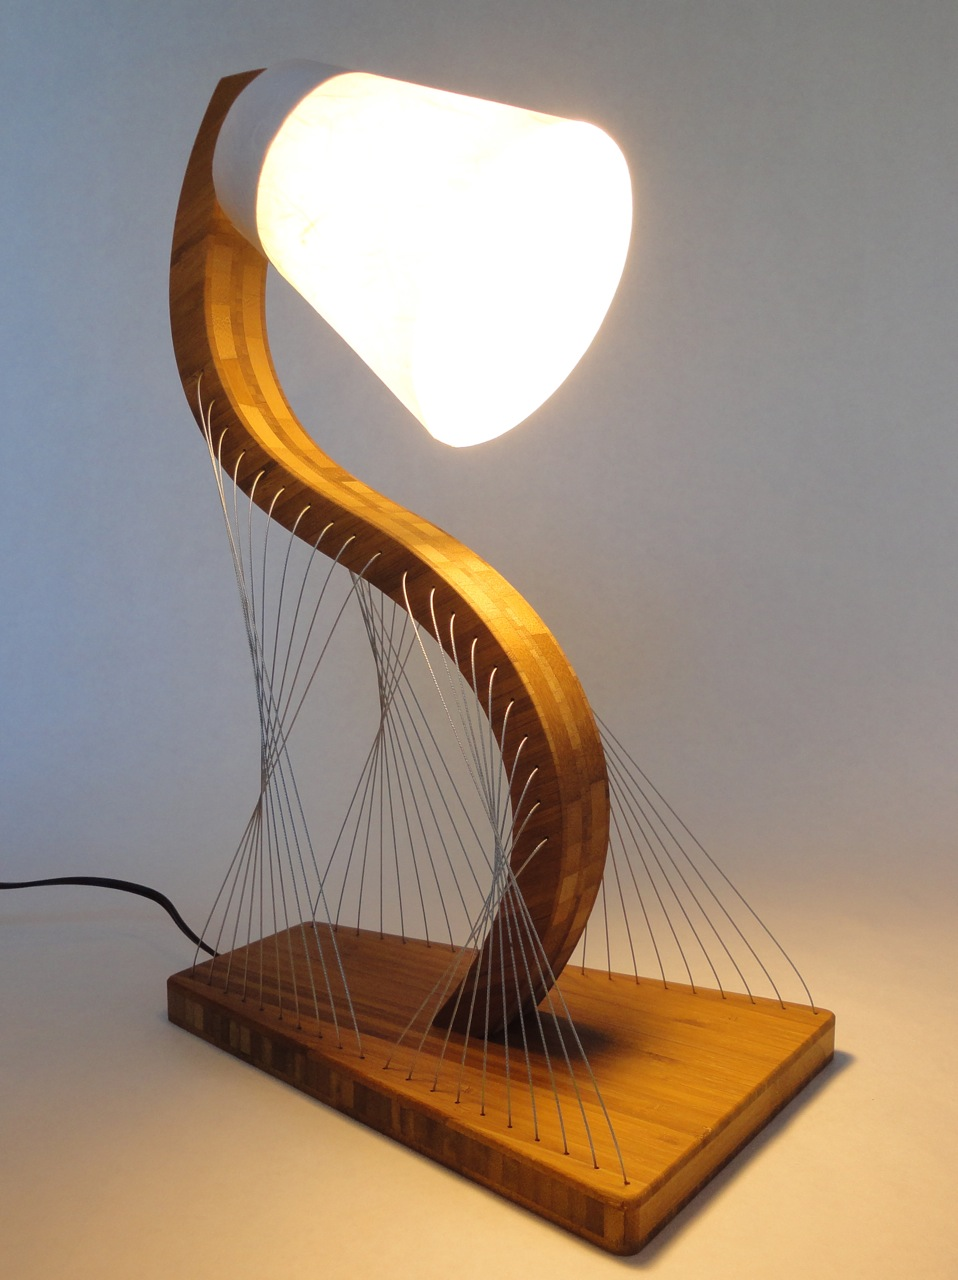 Awesome furniture are held together only by tension lamp